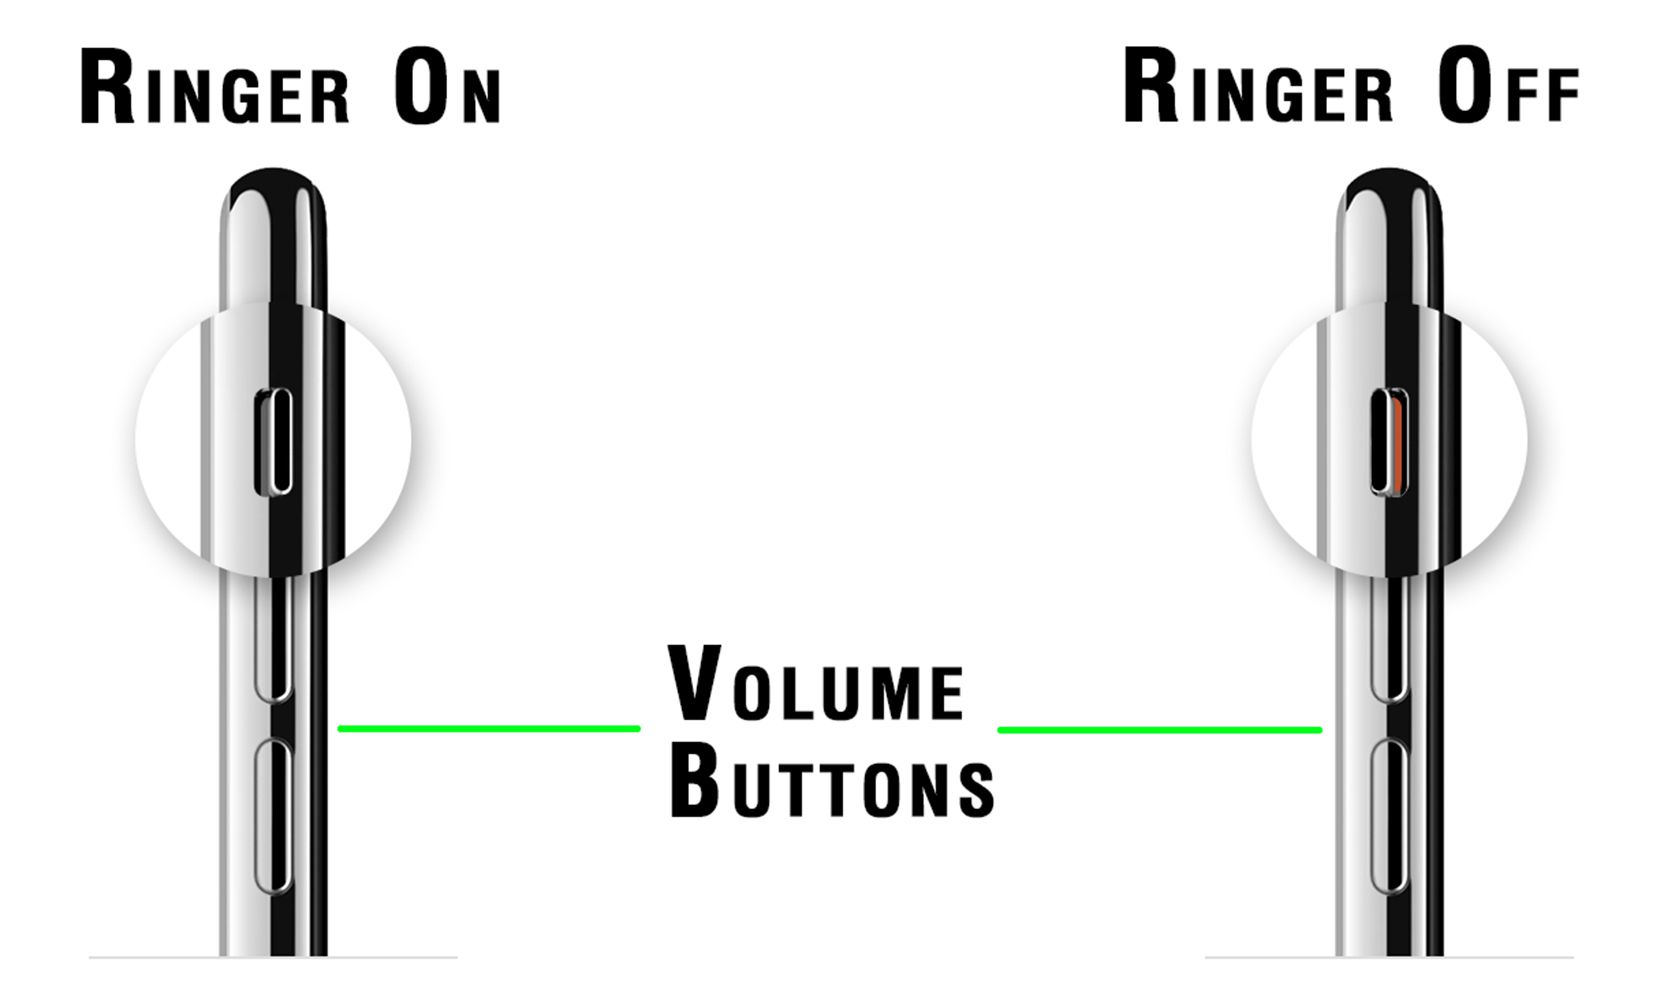 iPhone ringer switches showing Ringer On, Ringer Off and Volume Buttons